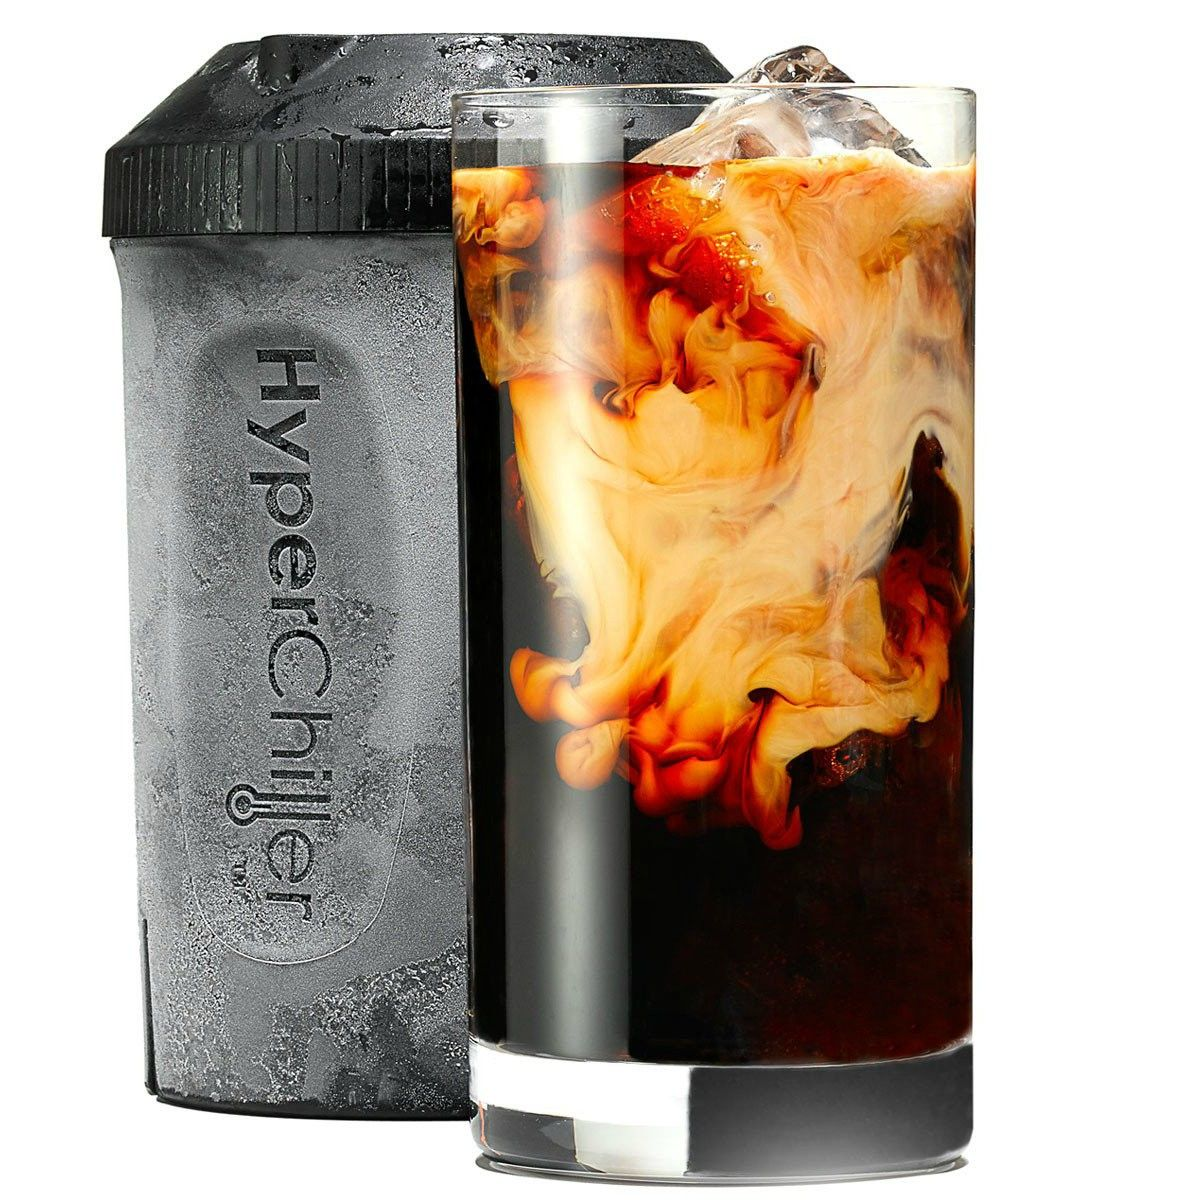 HyperChiller (With images) Iced coffee maker, How to